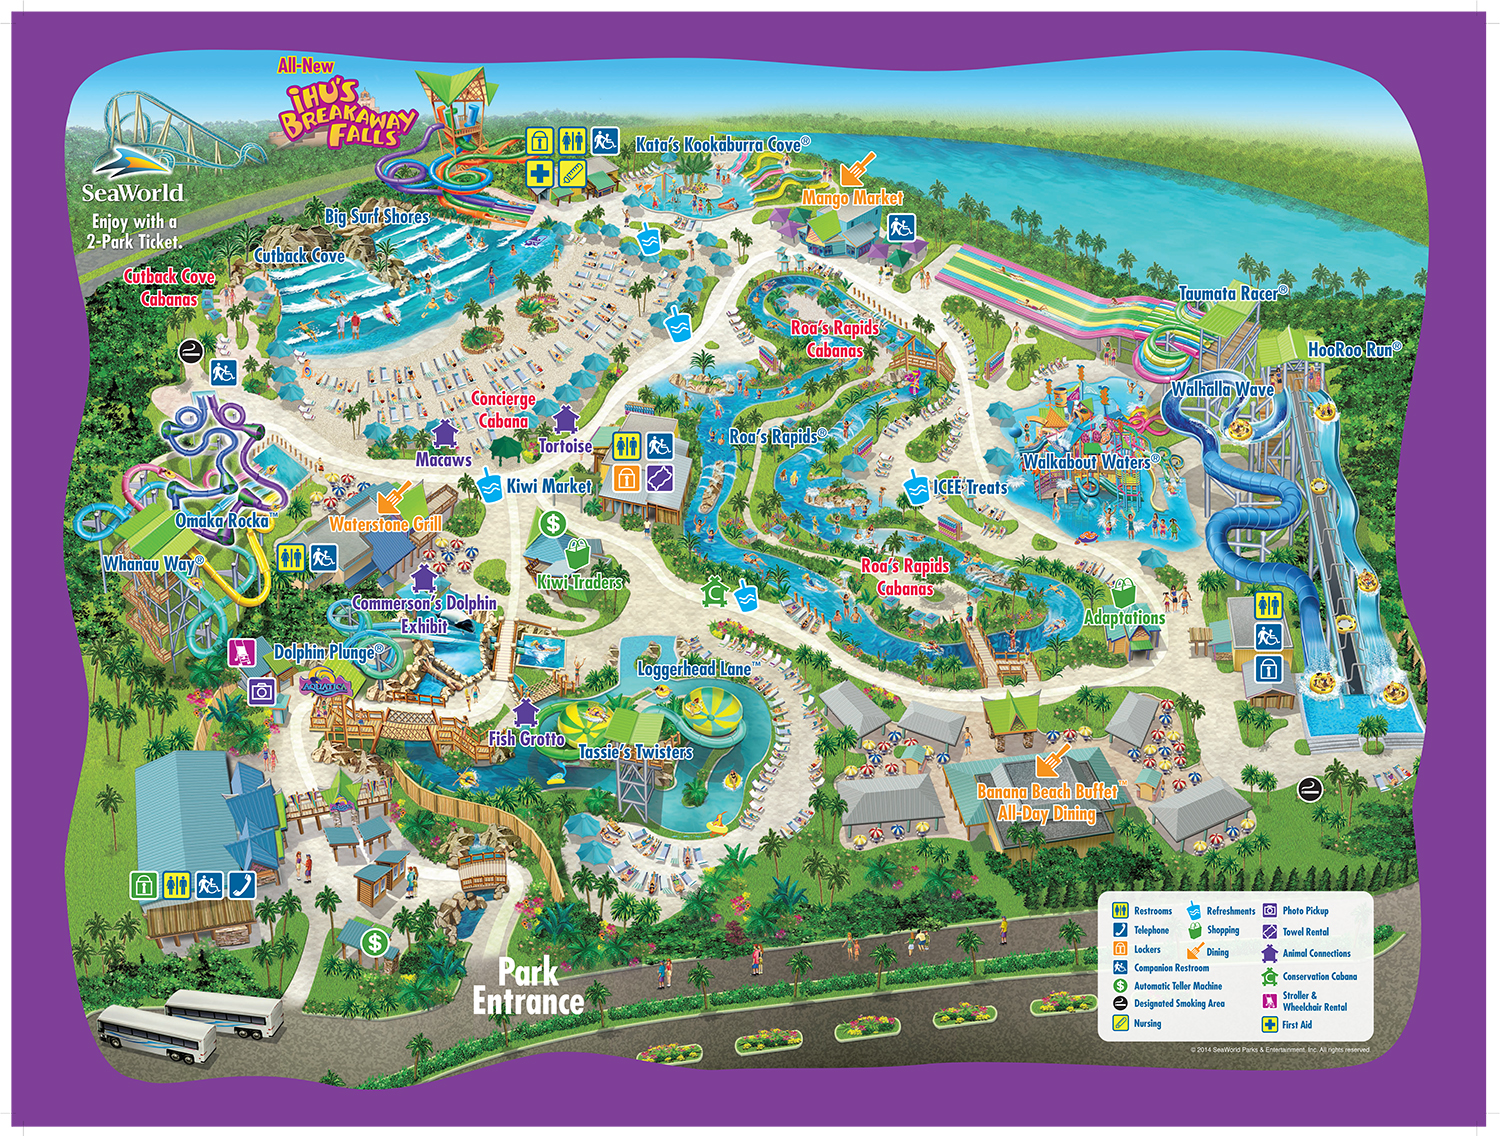 Seaworld park map theme park attractions map seaworld orlando seaworld orlando aquatica tickets best value seaworld park pass aquatica park map gumiabroncs Image collections